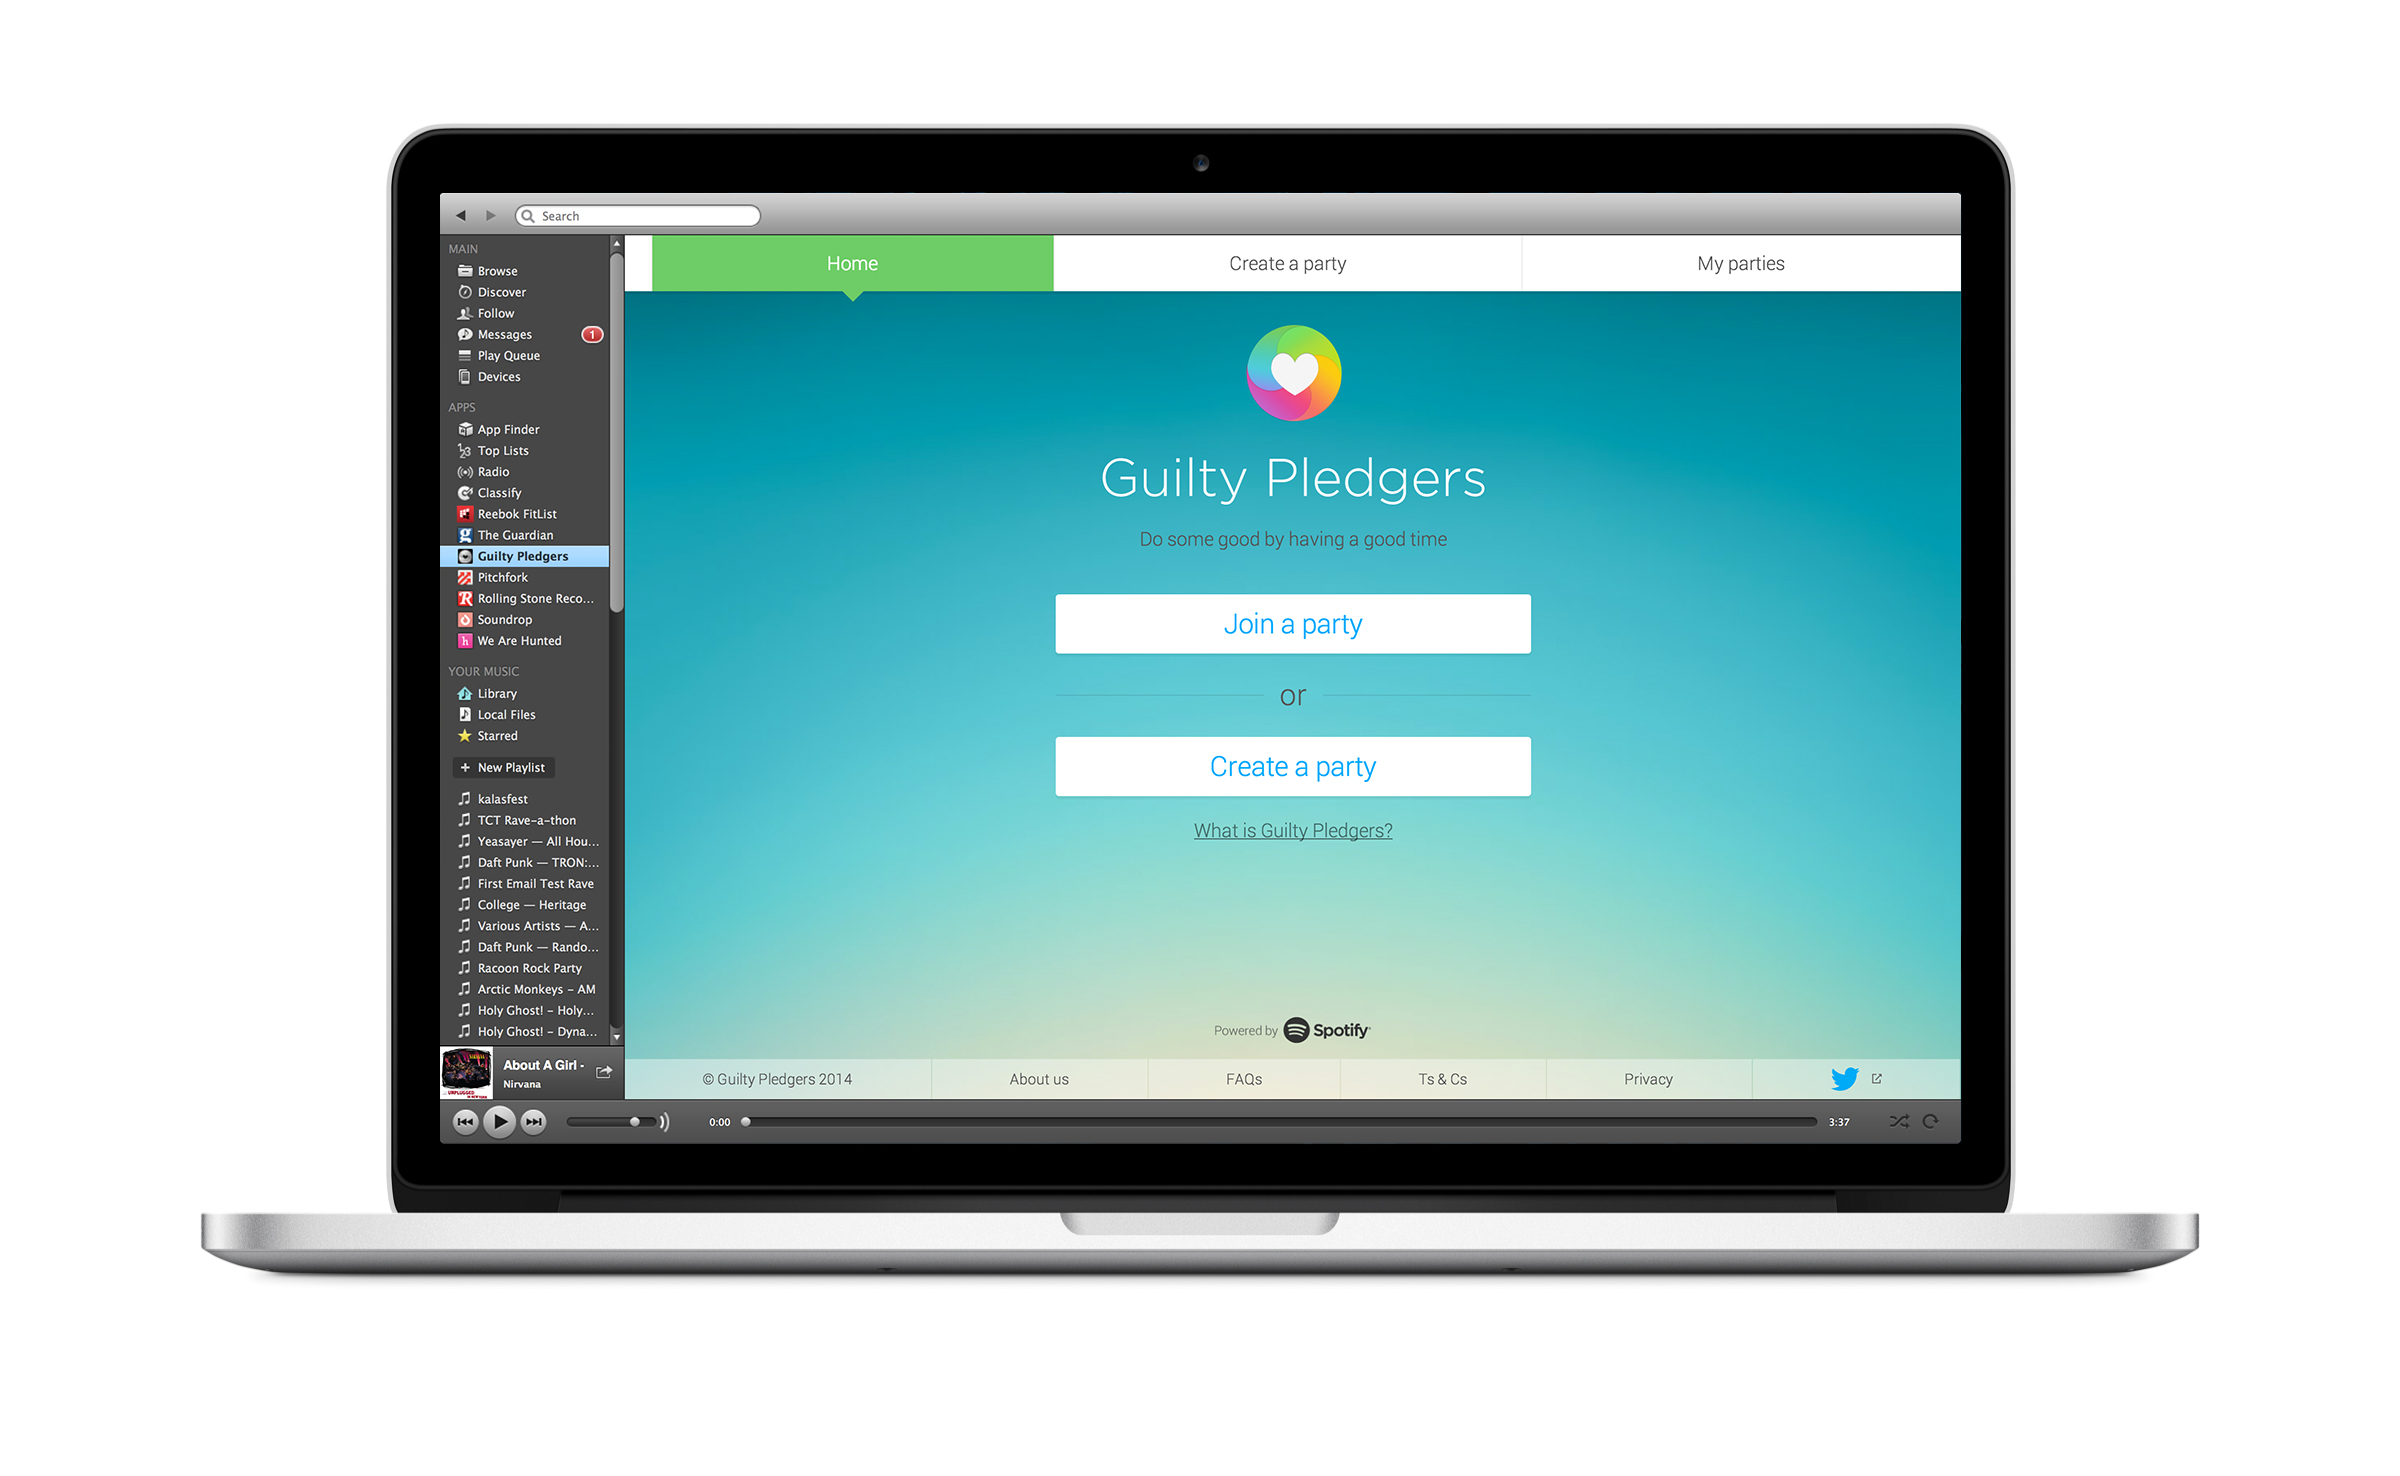 Guilty Pledgers app on desktop